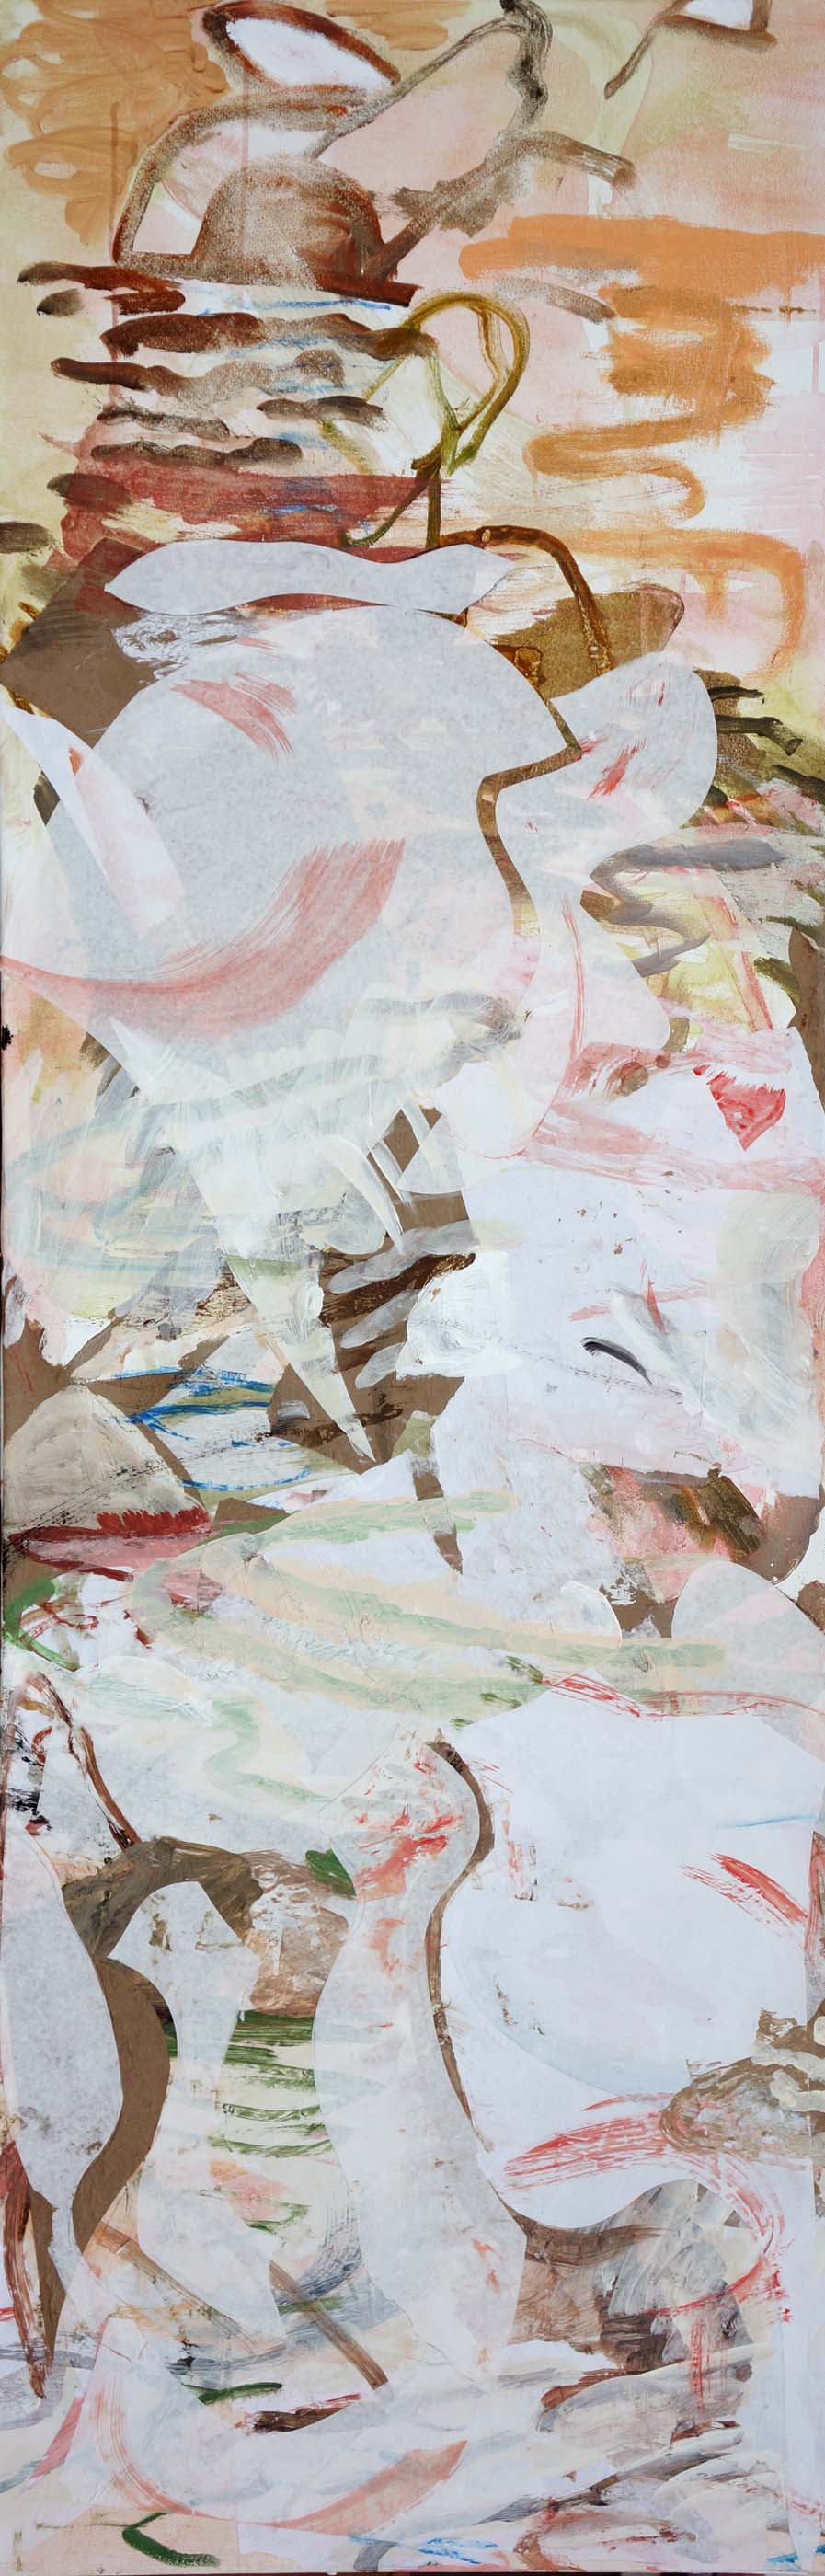 2.22.13  song creek  78x26  acrylic & collaged paper on canvas